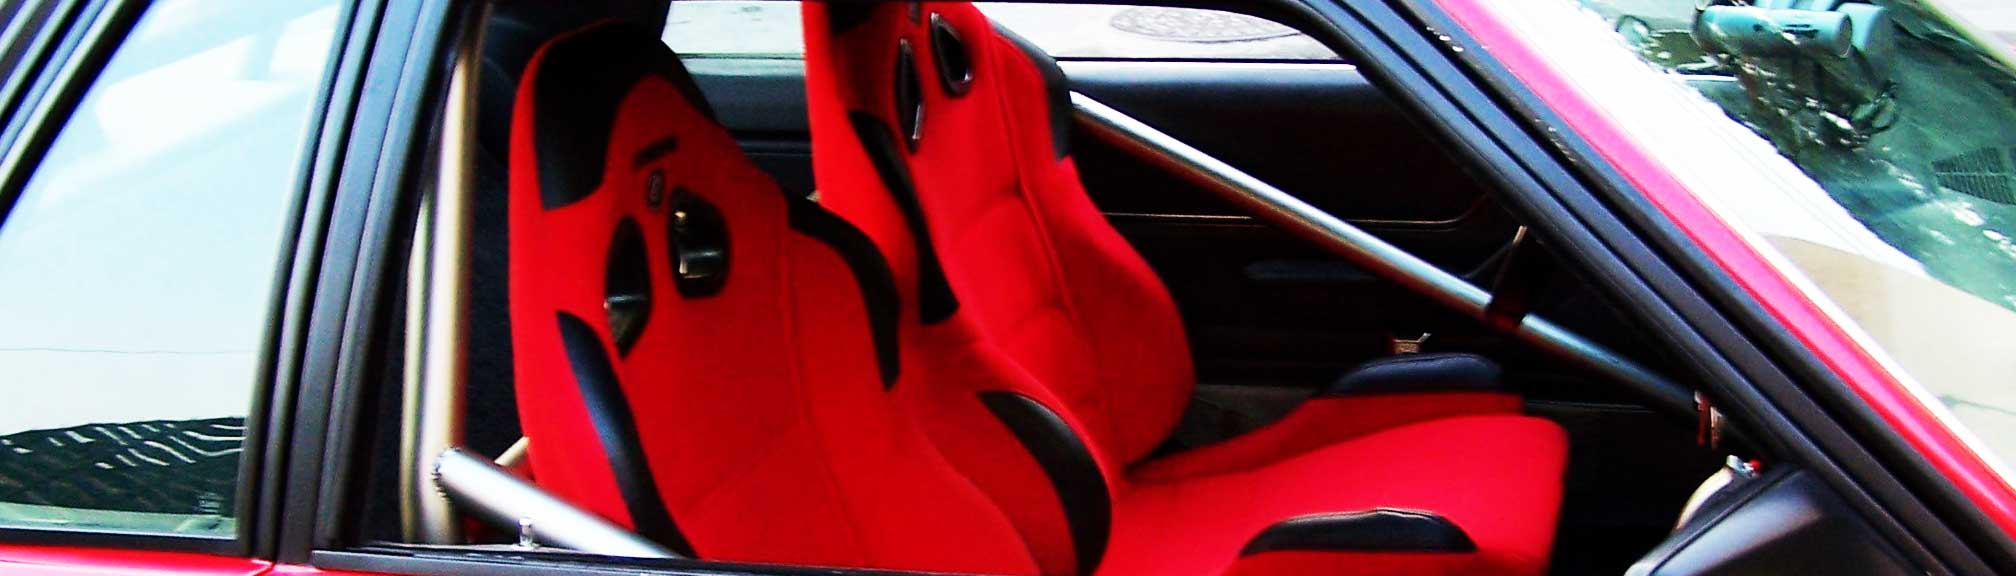 Spec-D Tuning Racing Seats